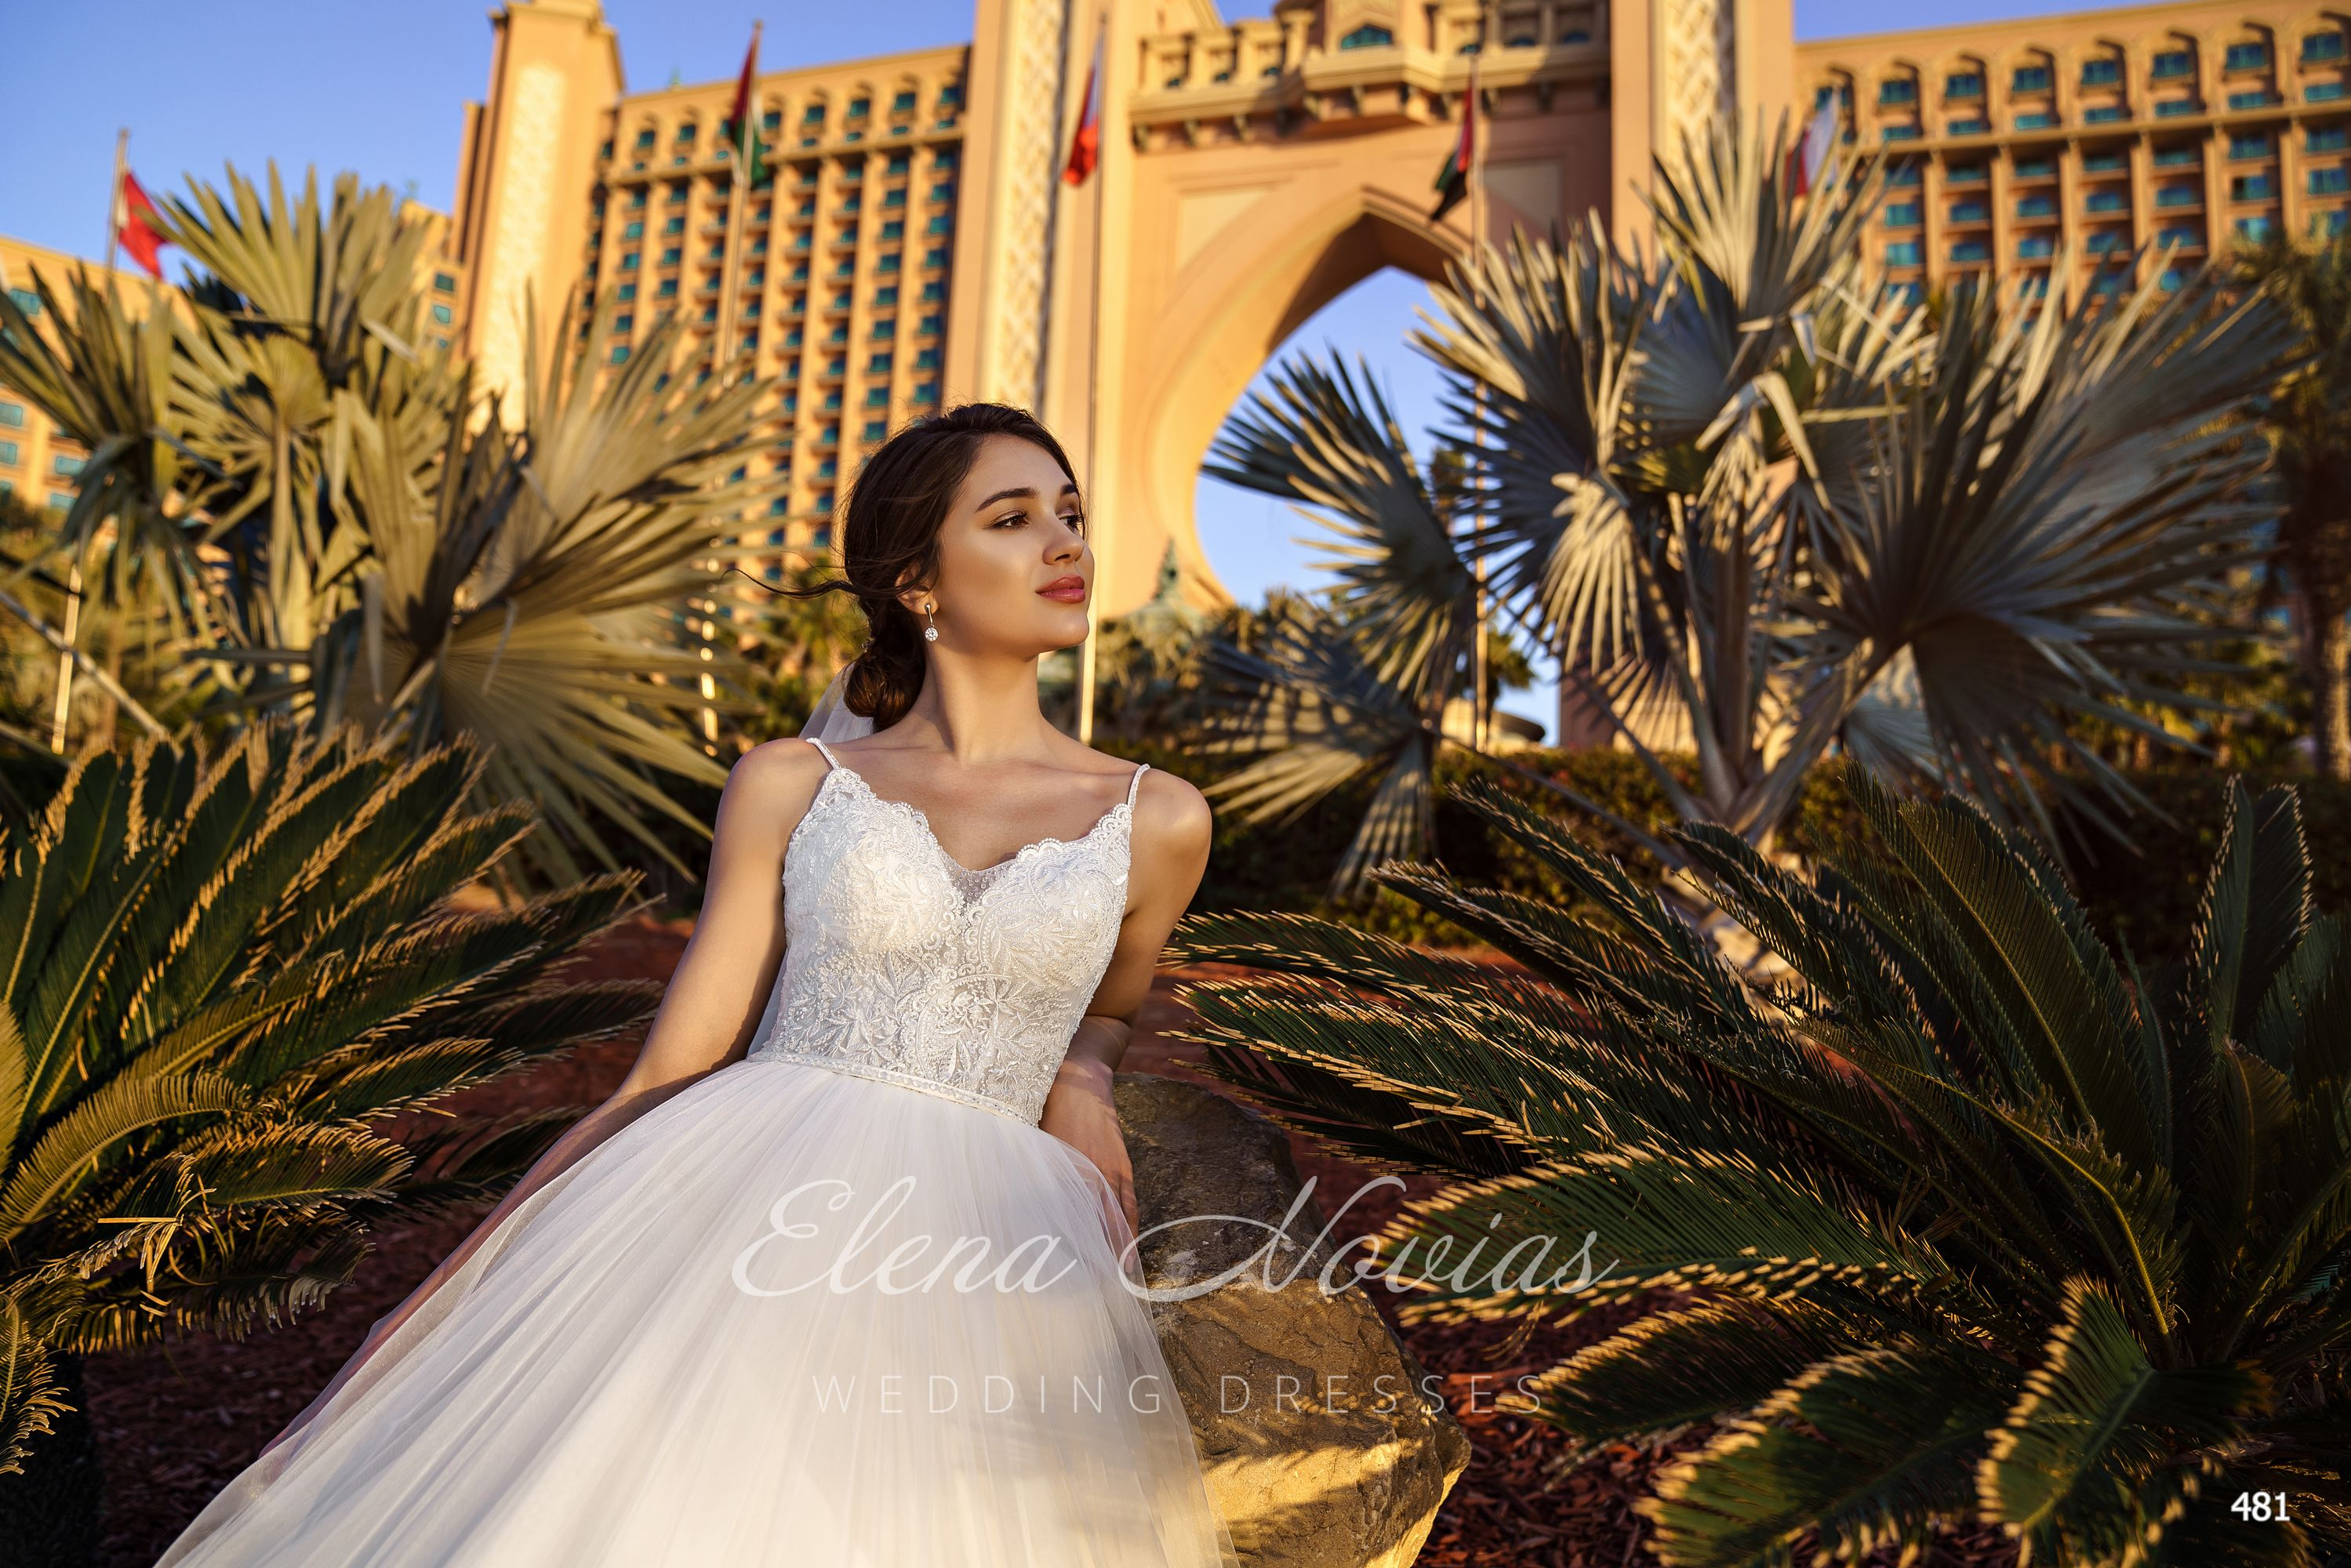 Wedding dresses 481 3